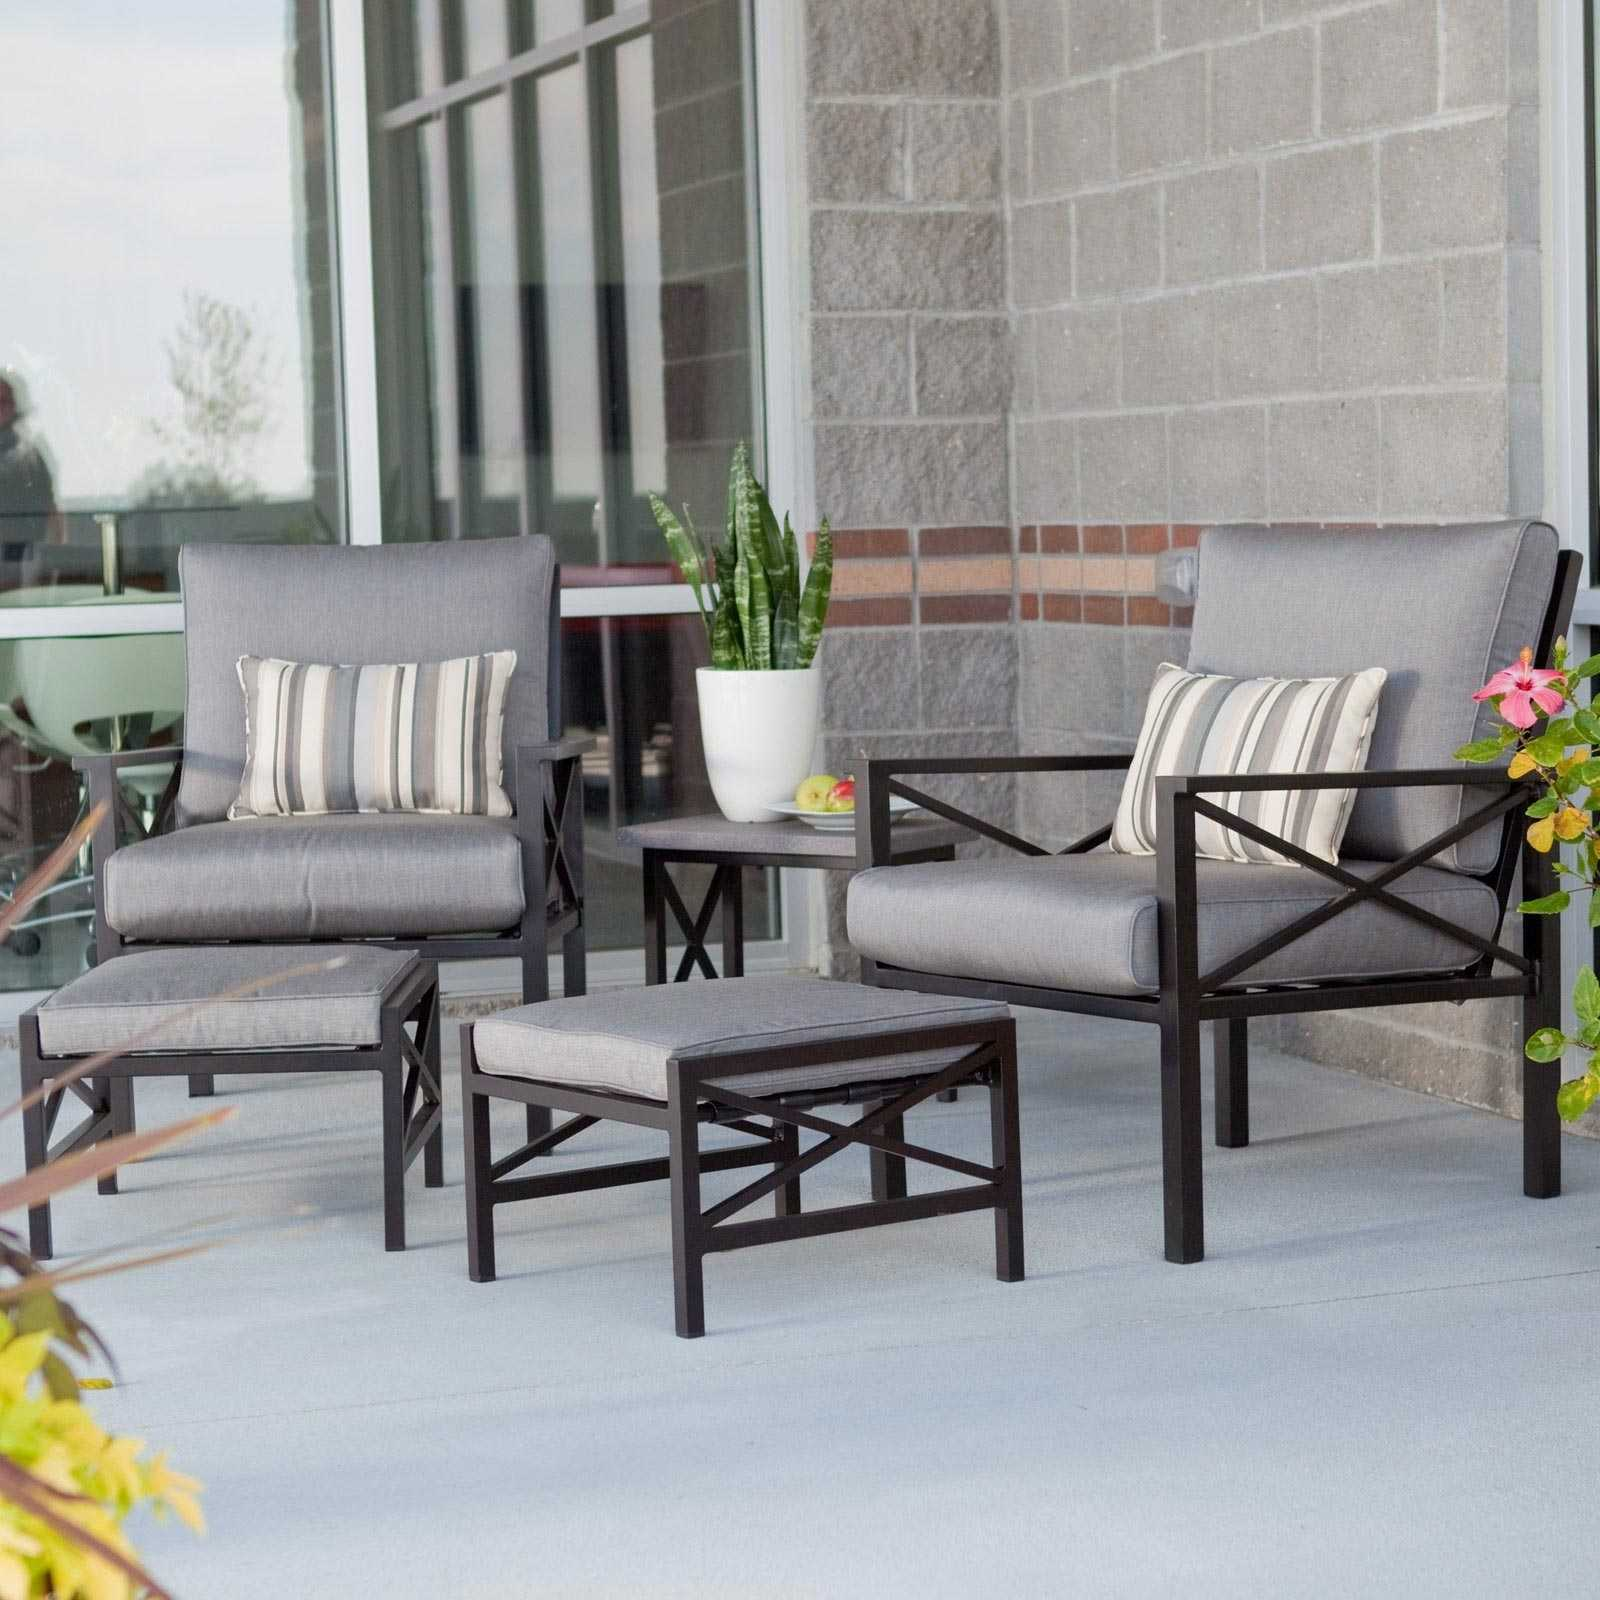 Eco friendly furniture for your balcony